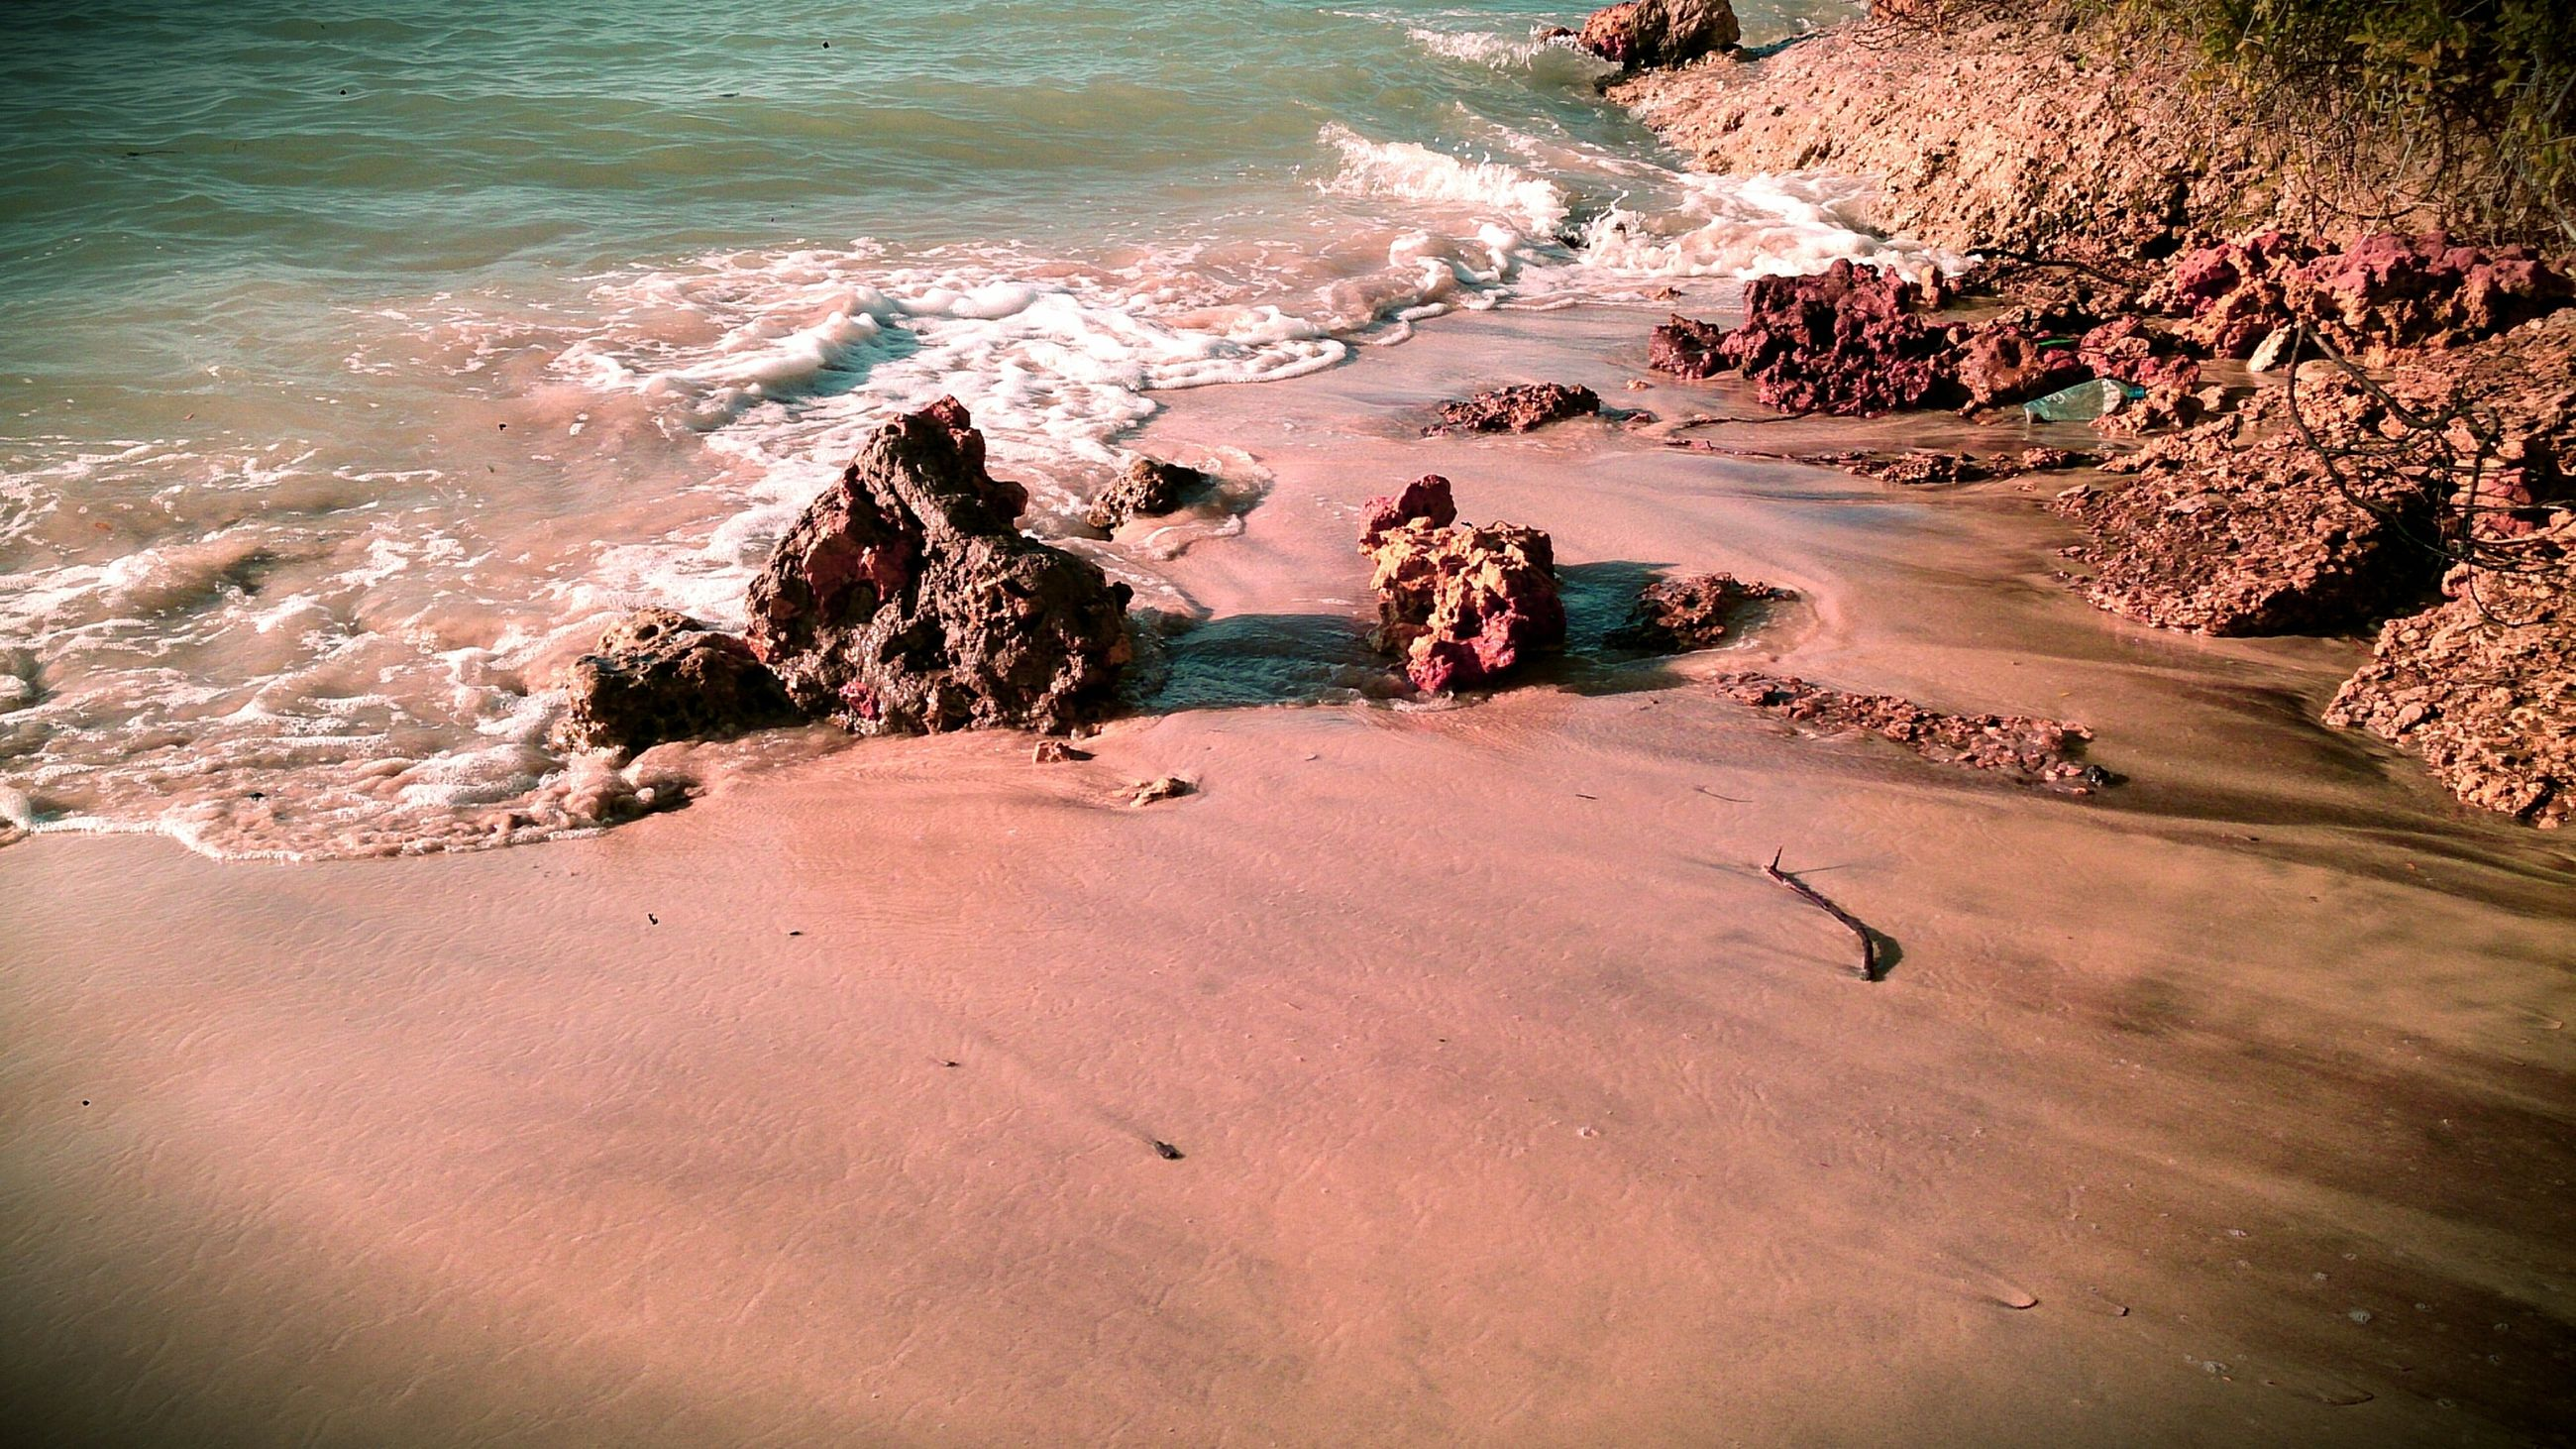 sea, beach, water, sand, shore, beauty in nature, high angle view, nature, tranquility, tranquil scene, surf, scenics, wave, sunlight, coastline, horizon over water, rock - object, vacations, idyllic, outdoors